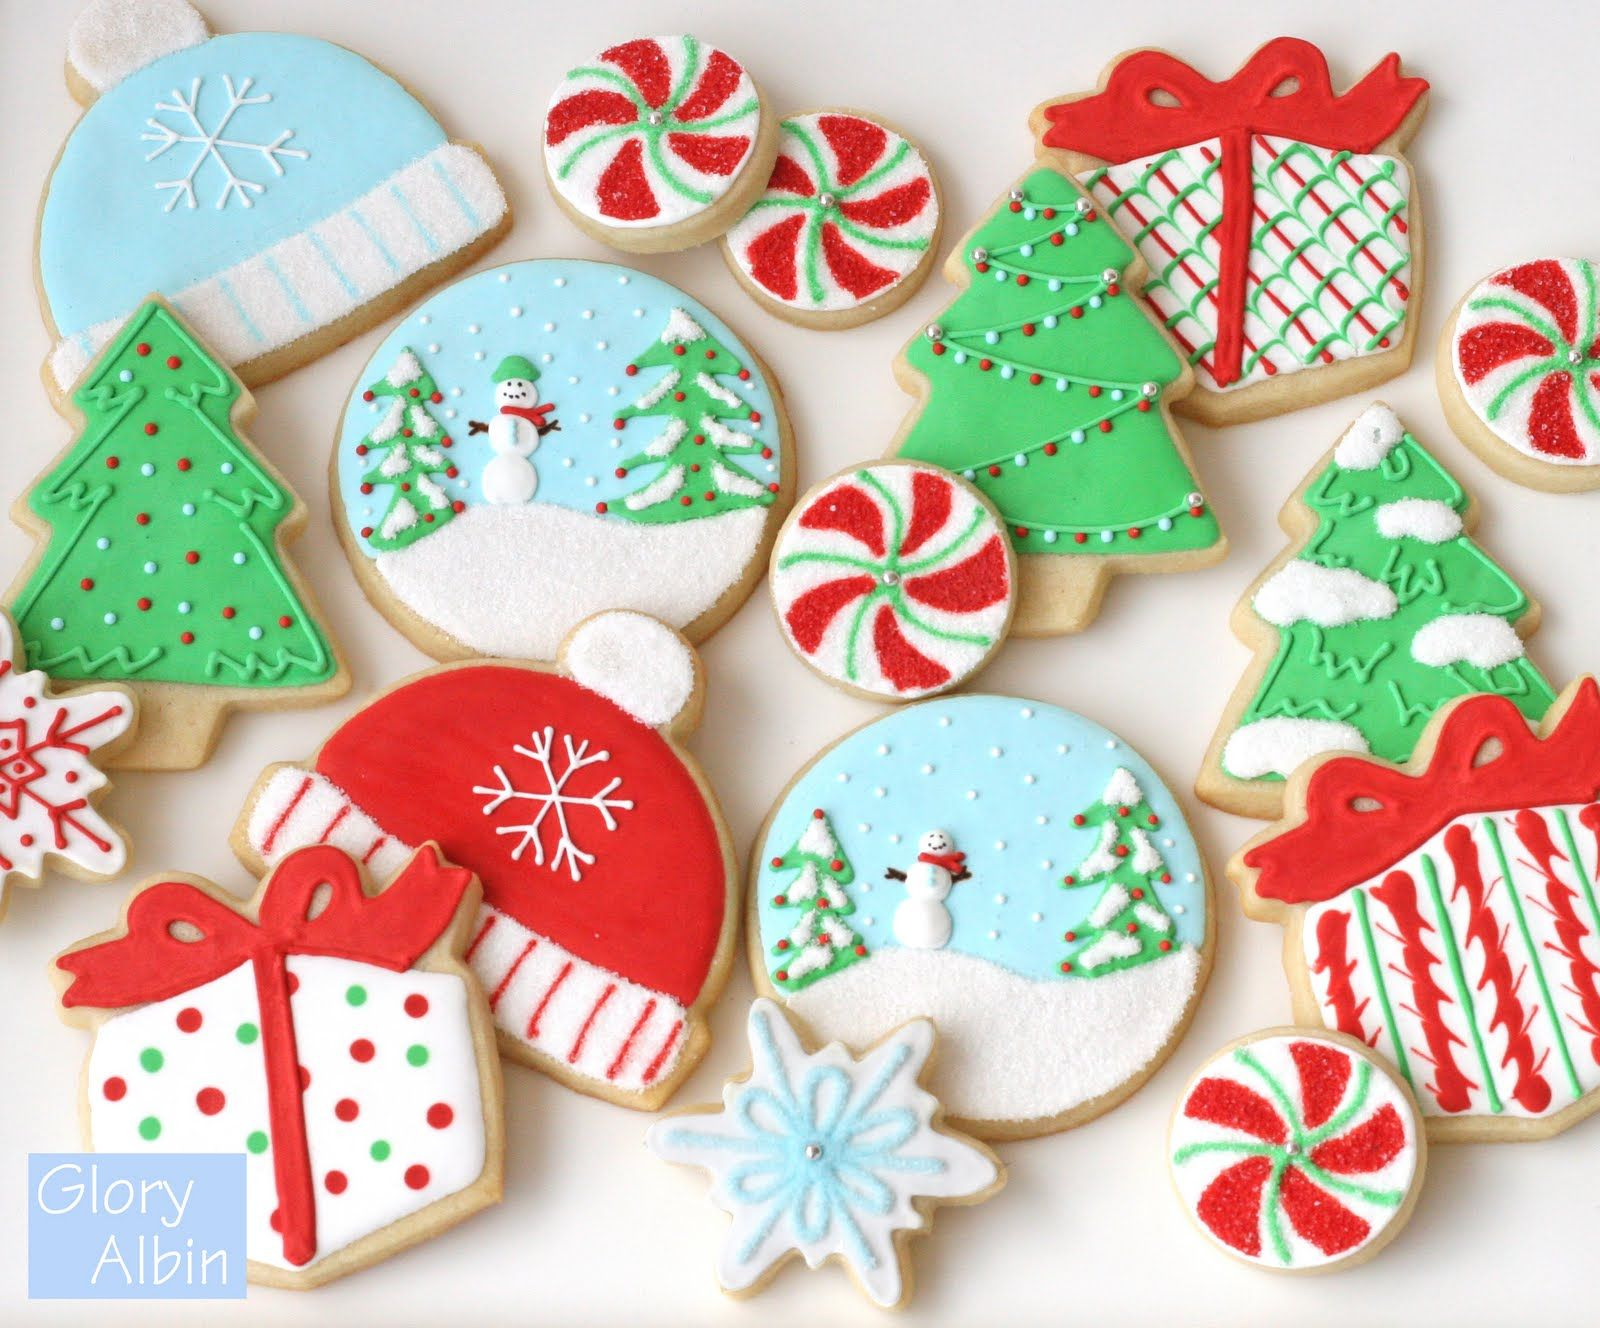 Decorating Sugar Cookies With Royal Icing Kitchen Daily